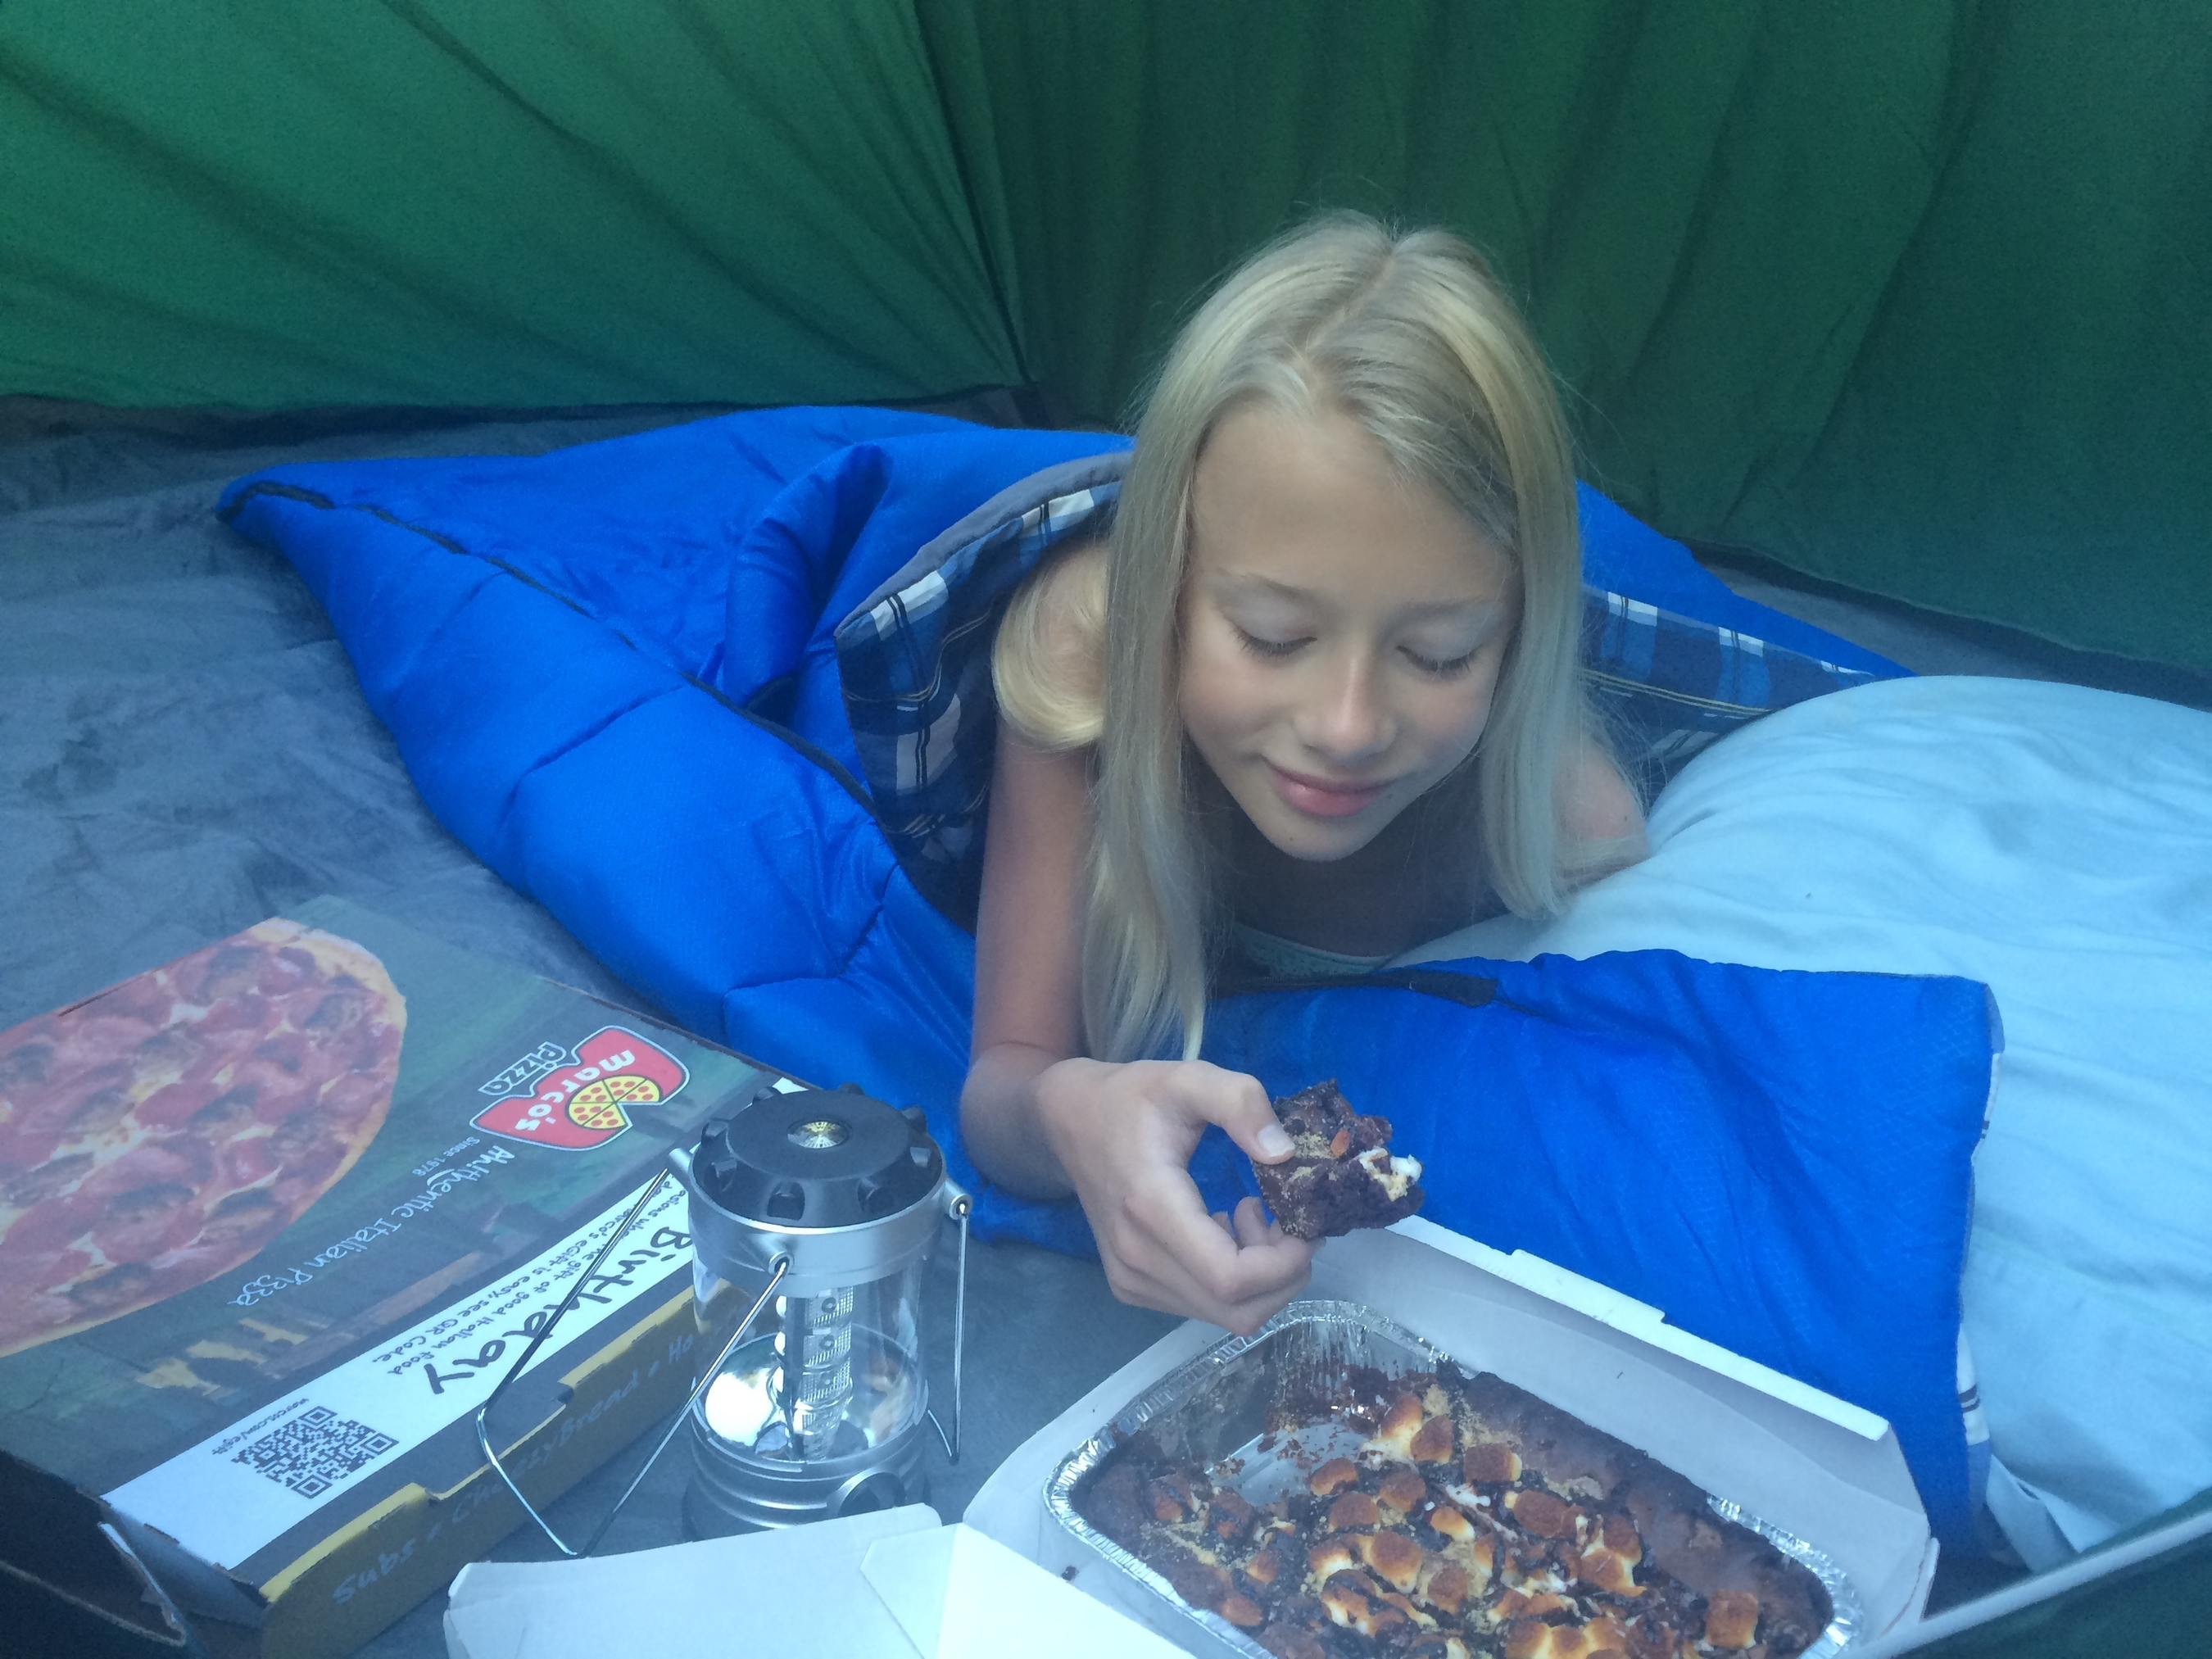 marco u0027s pizza launches fundraising campaign for youth camping